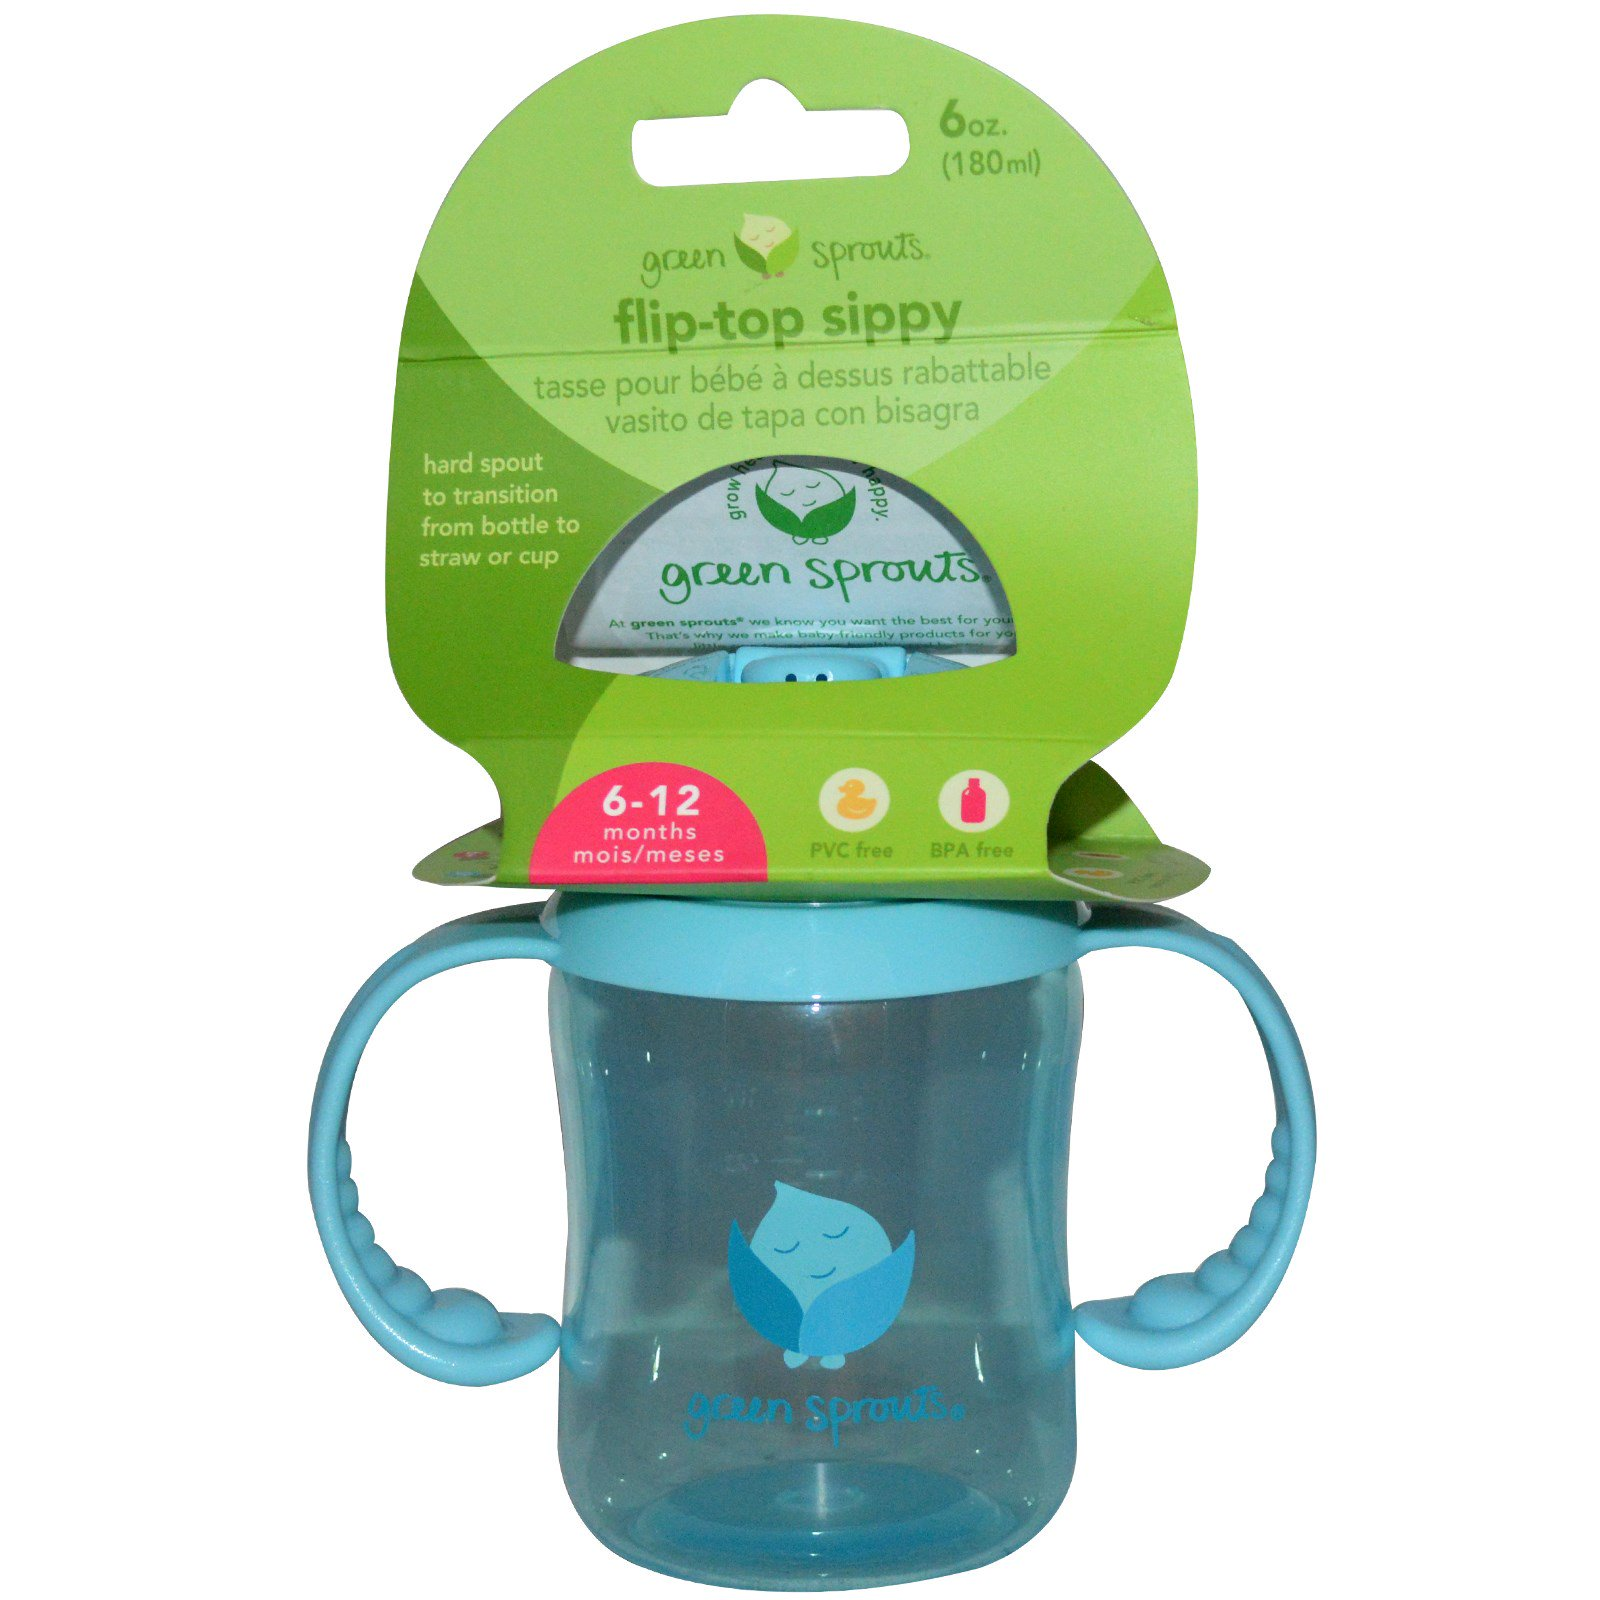 Iplay Inc Green Sprouts Flip Top Sippy Blue 6 Oz 180 Ml Boon Cup Tall 10oz Click To Zoom